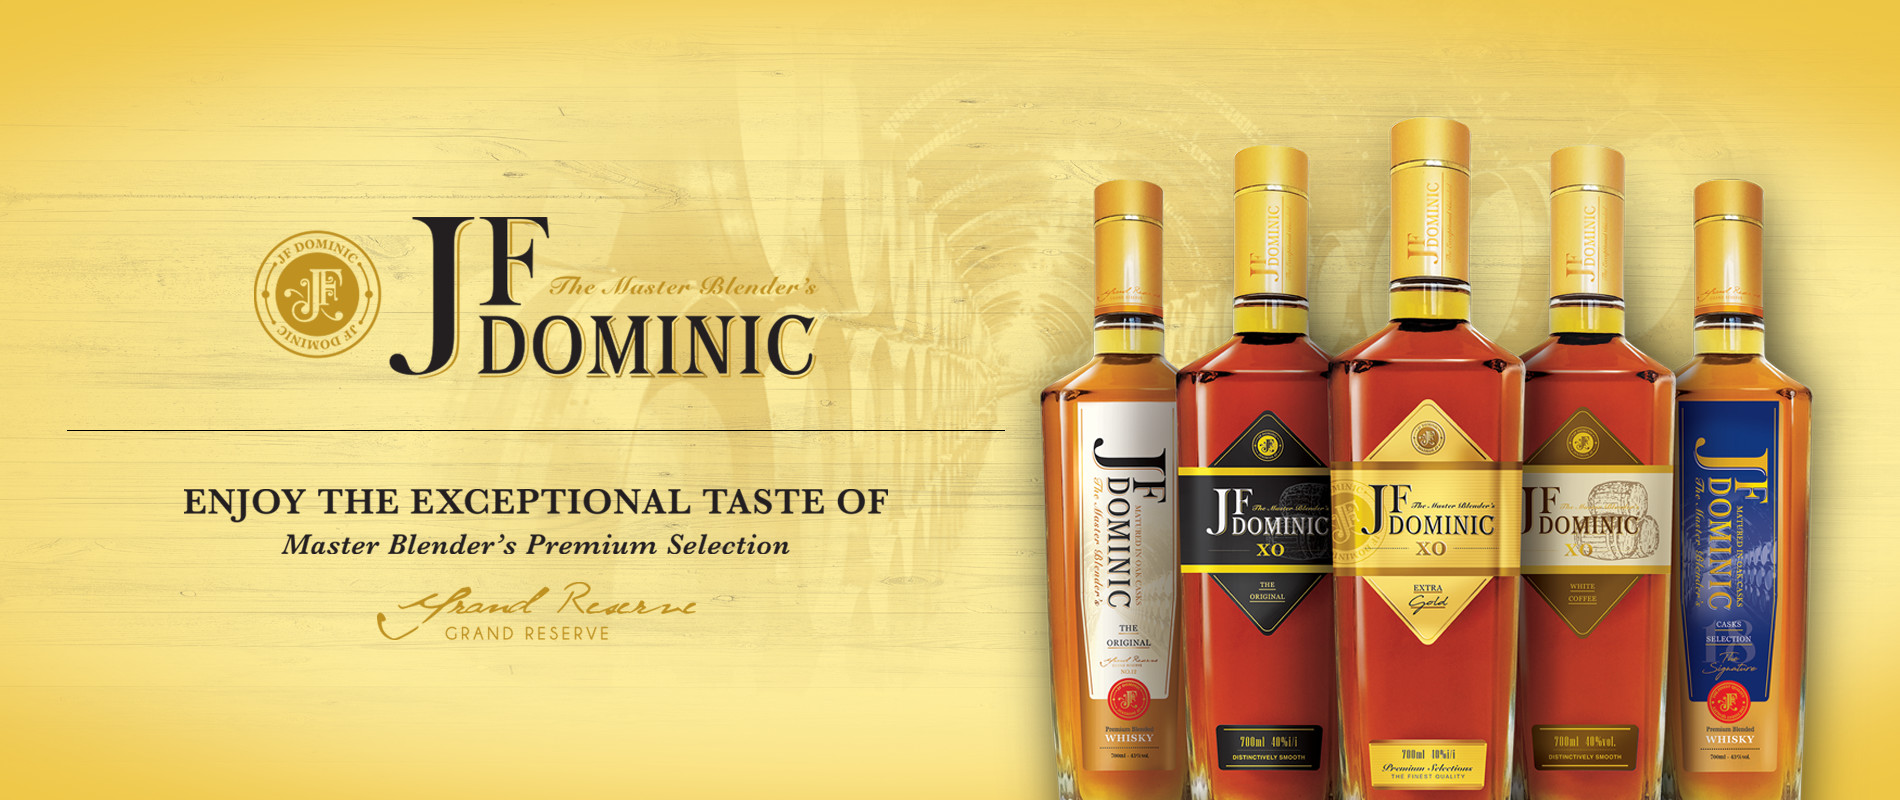 JF Dominic Series let us Enjoy the Exceptional Tatse of Master Blender's Premium Selection